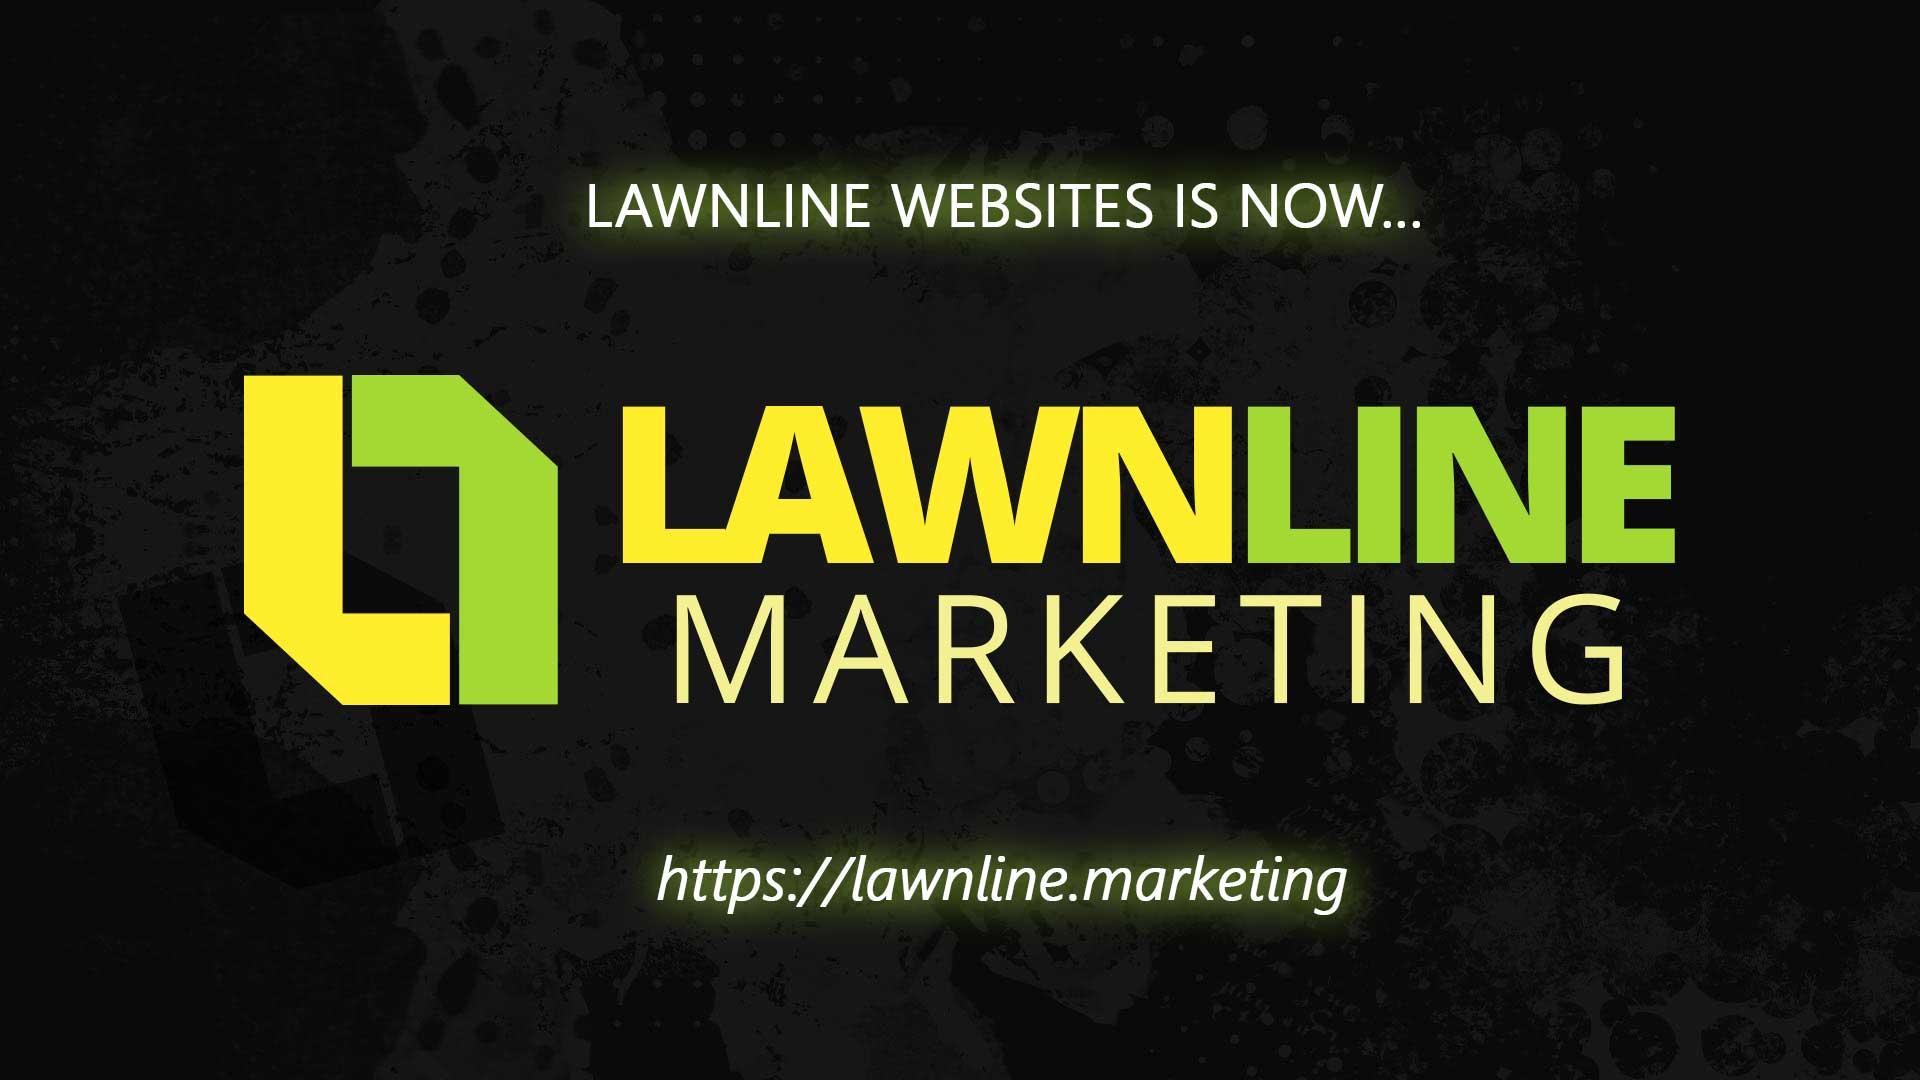 Press Release: Lawnline Website changes to Lawnline Marketing